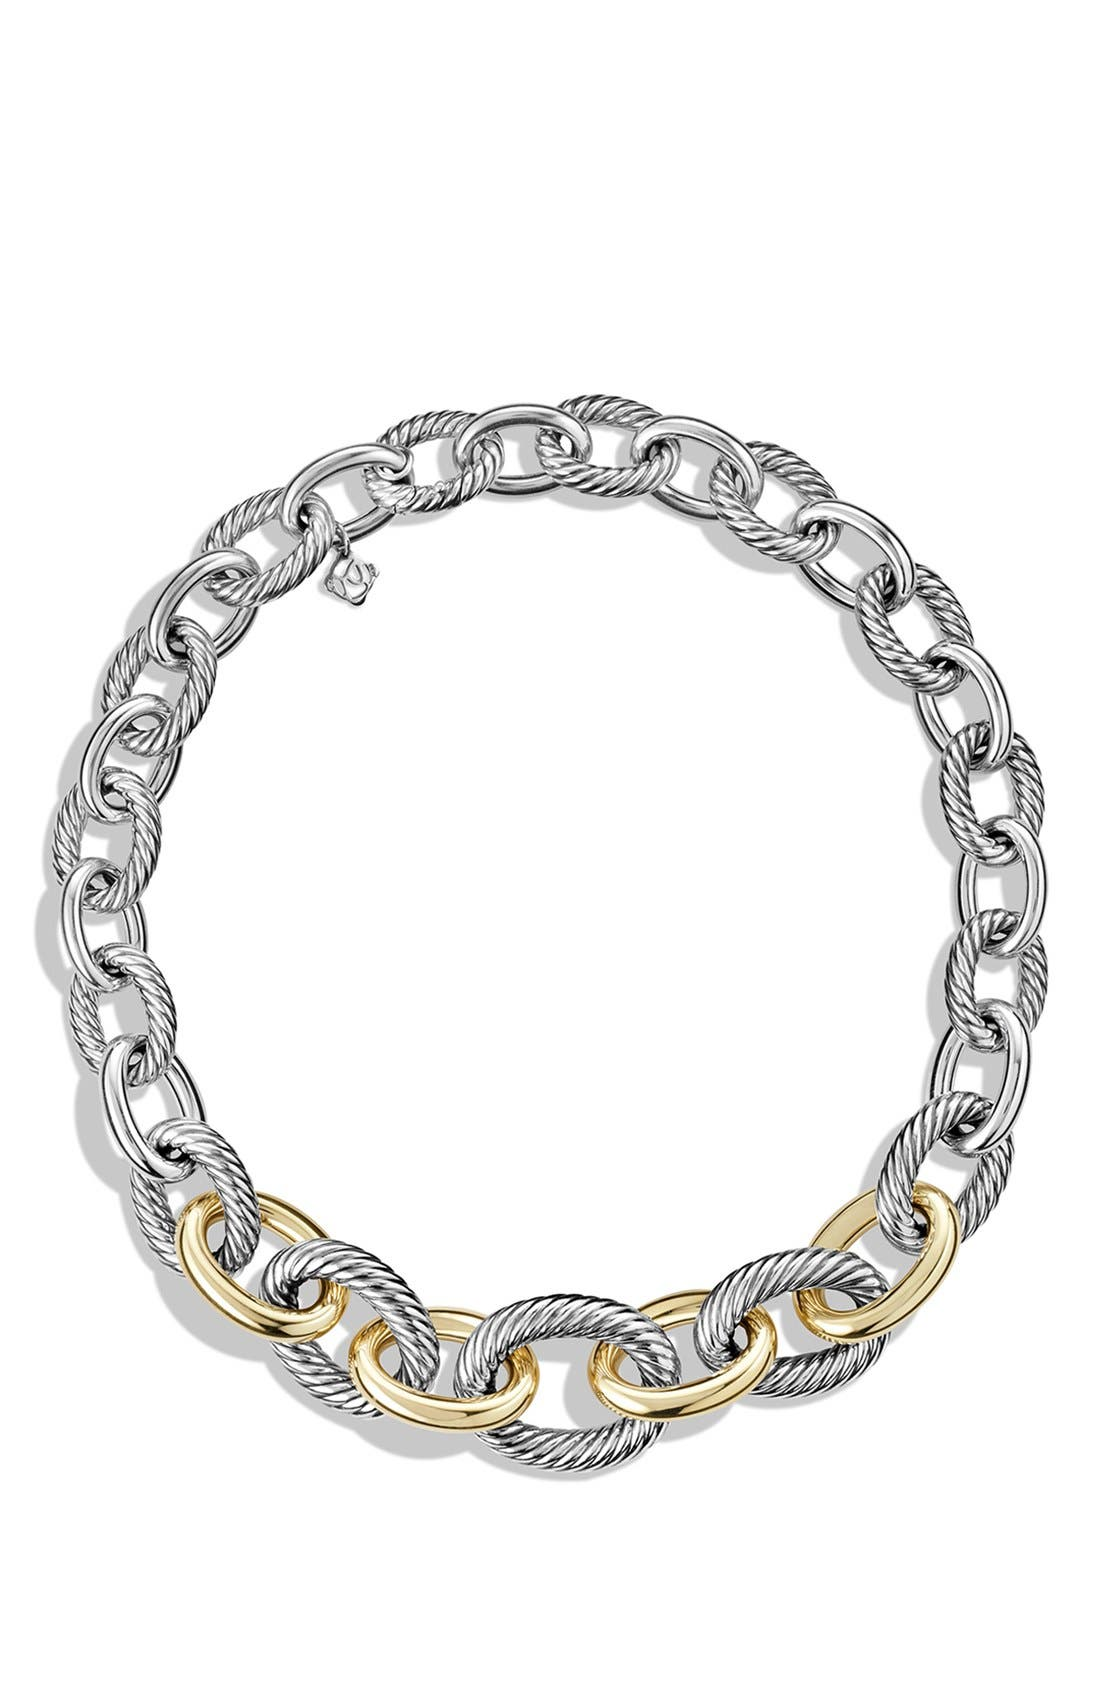 'Chain' Medium Oval Necklace with 14K Gold,                             Main thumbnail 1, color,                             TWO TONE